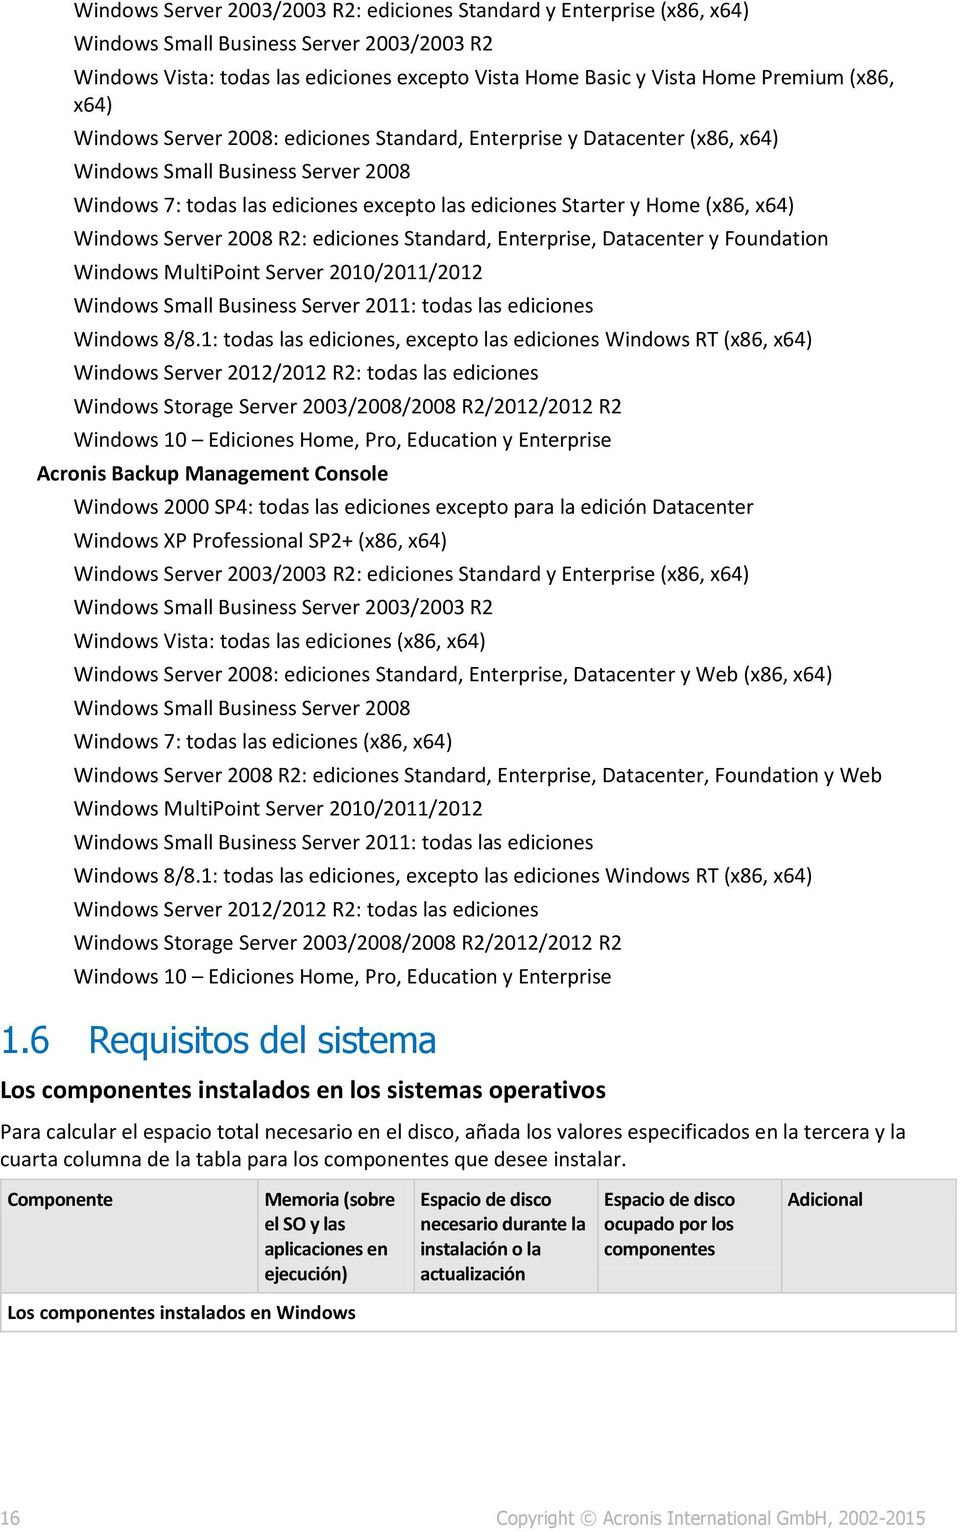 x64) Windows Server 2008 R2: ediciones Standard, Enterprise, Datacenter y Foundation Windows MultiPoint Server 2010/2011/2012 Windows Small Business Server 2011: todas las ediciones Windows 8/8.